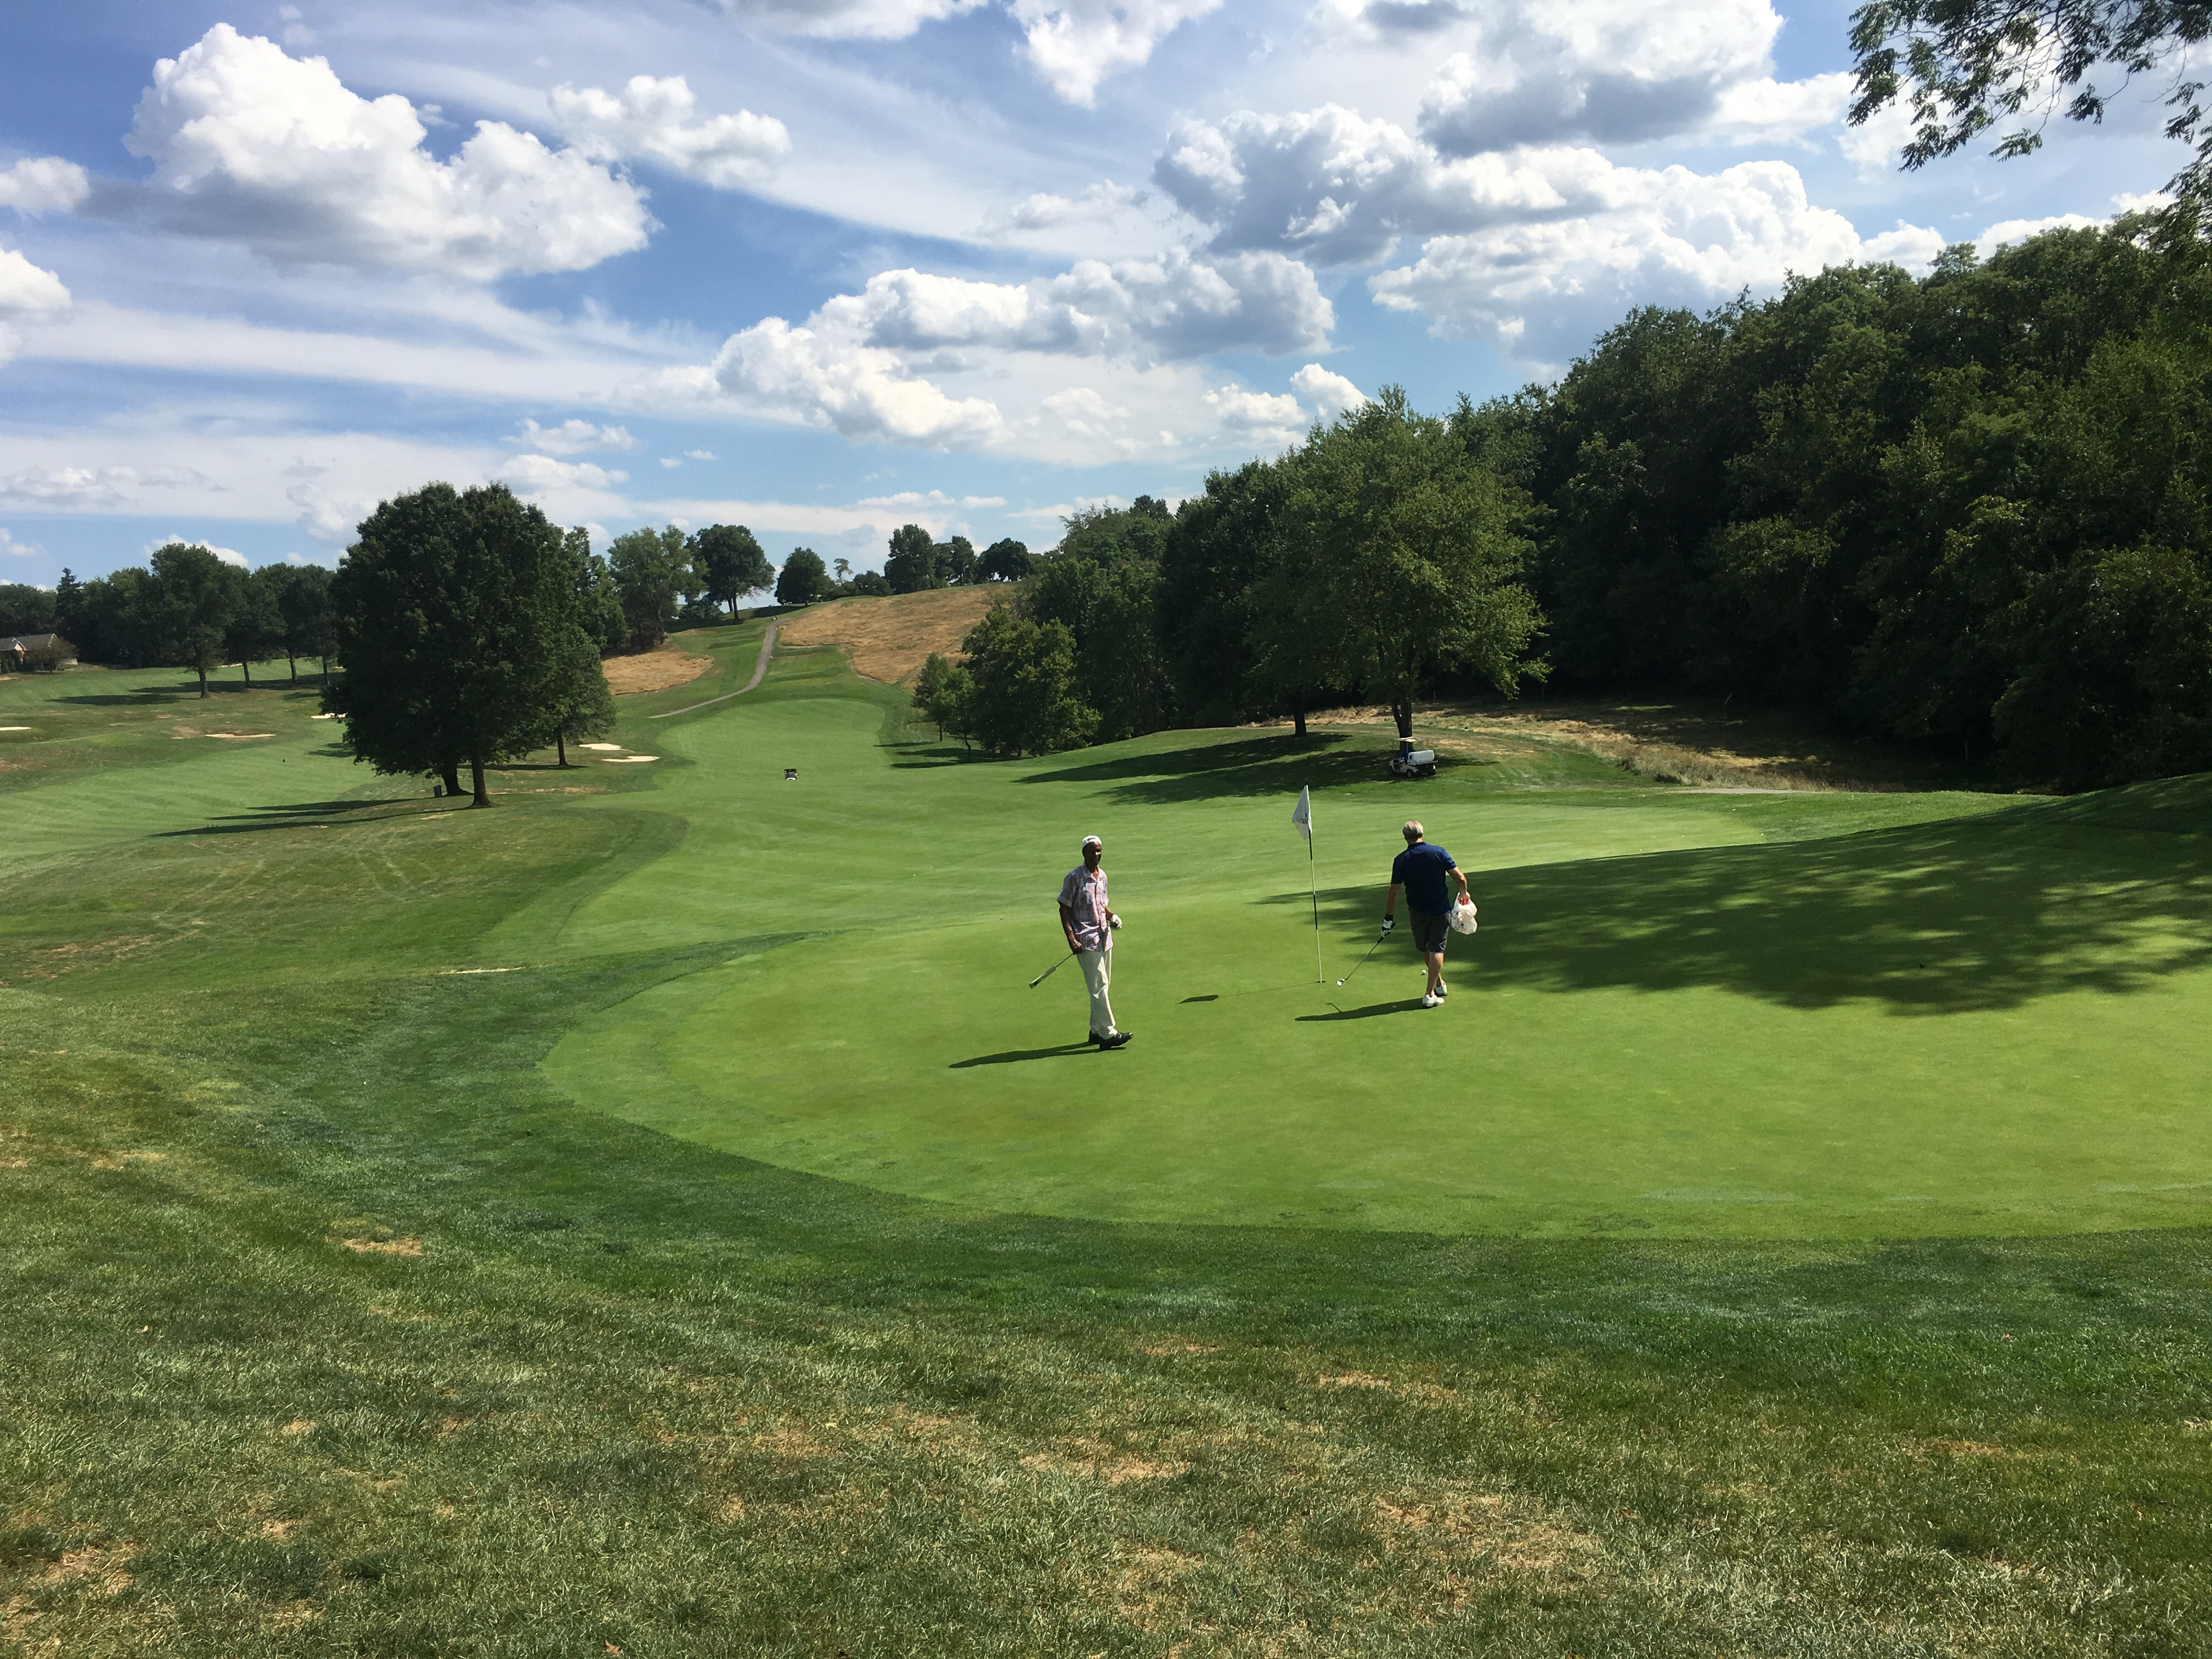 LEARN ABOUT 2021 GOLF-OUTING SPONSORHIP OPPORTUNITIES!